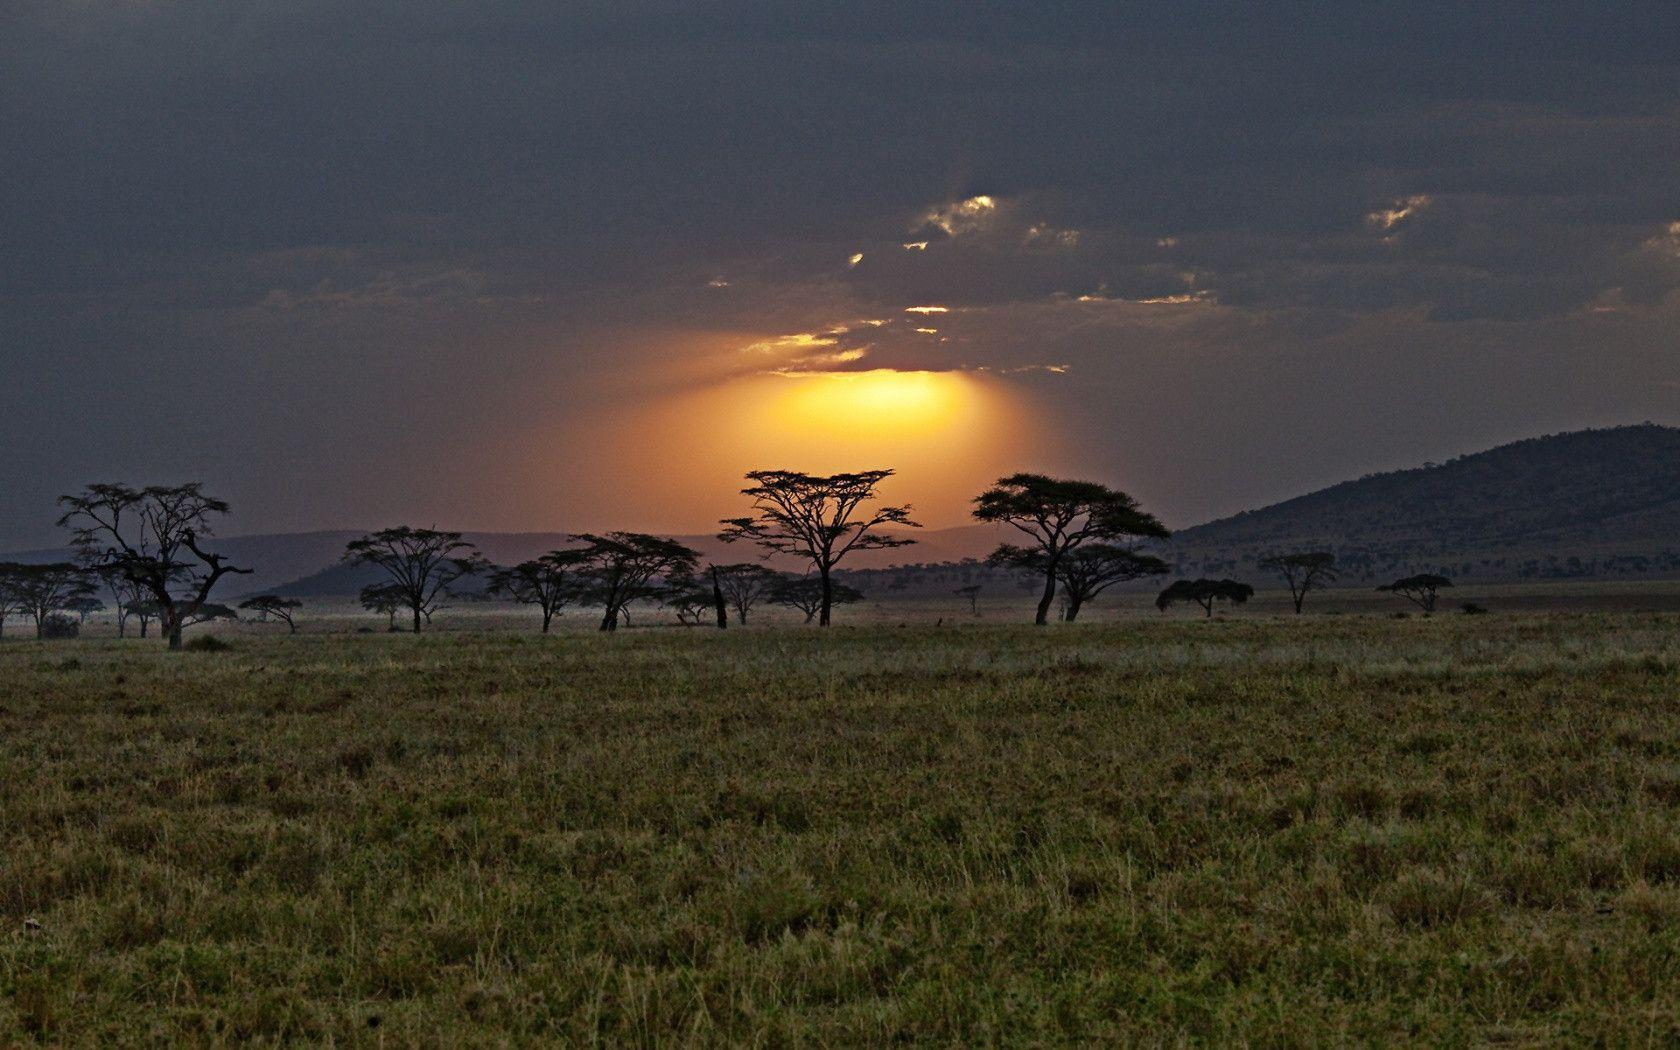 1680x1050 Sunset kenya africa Wallpaper